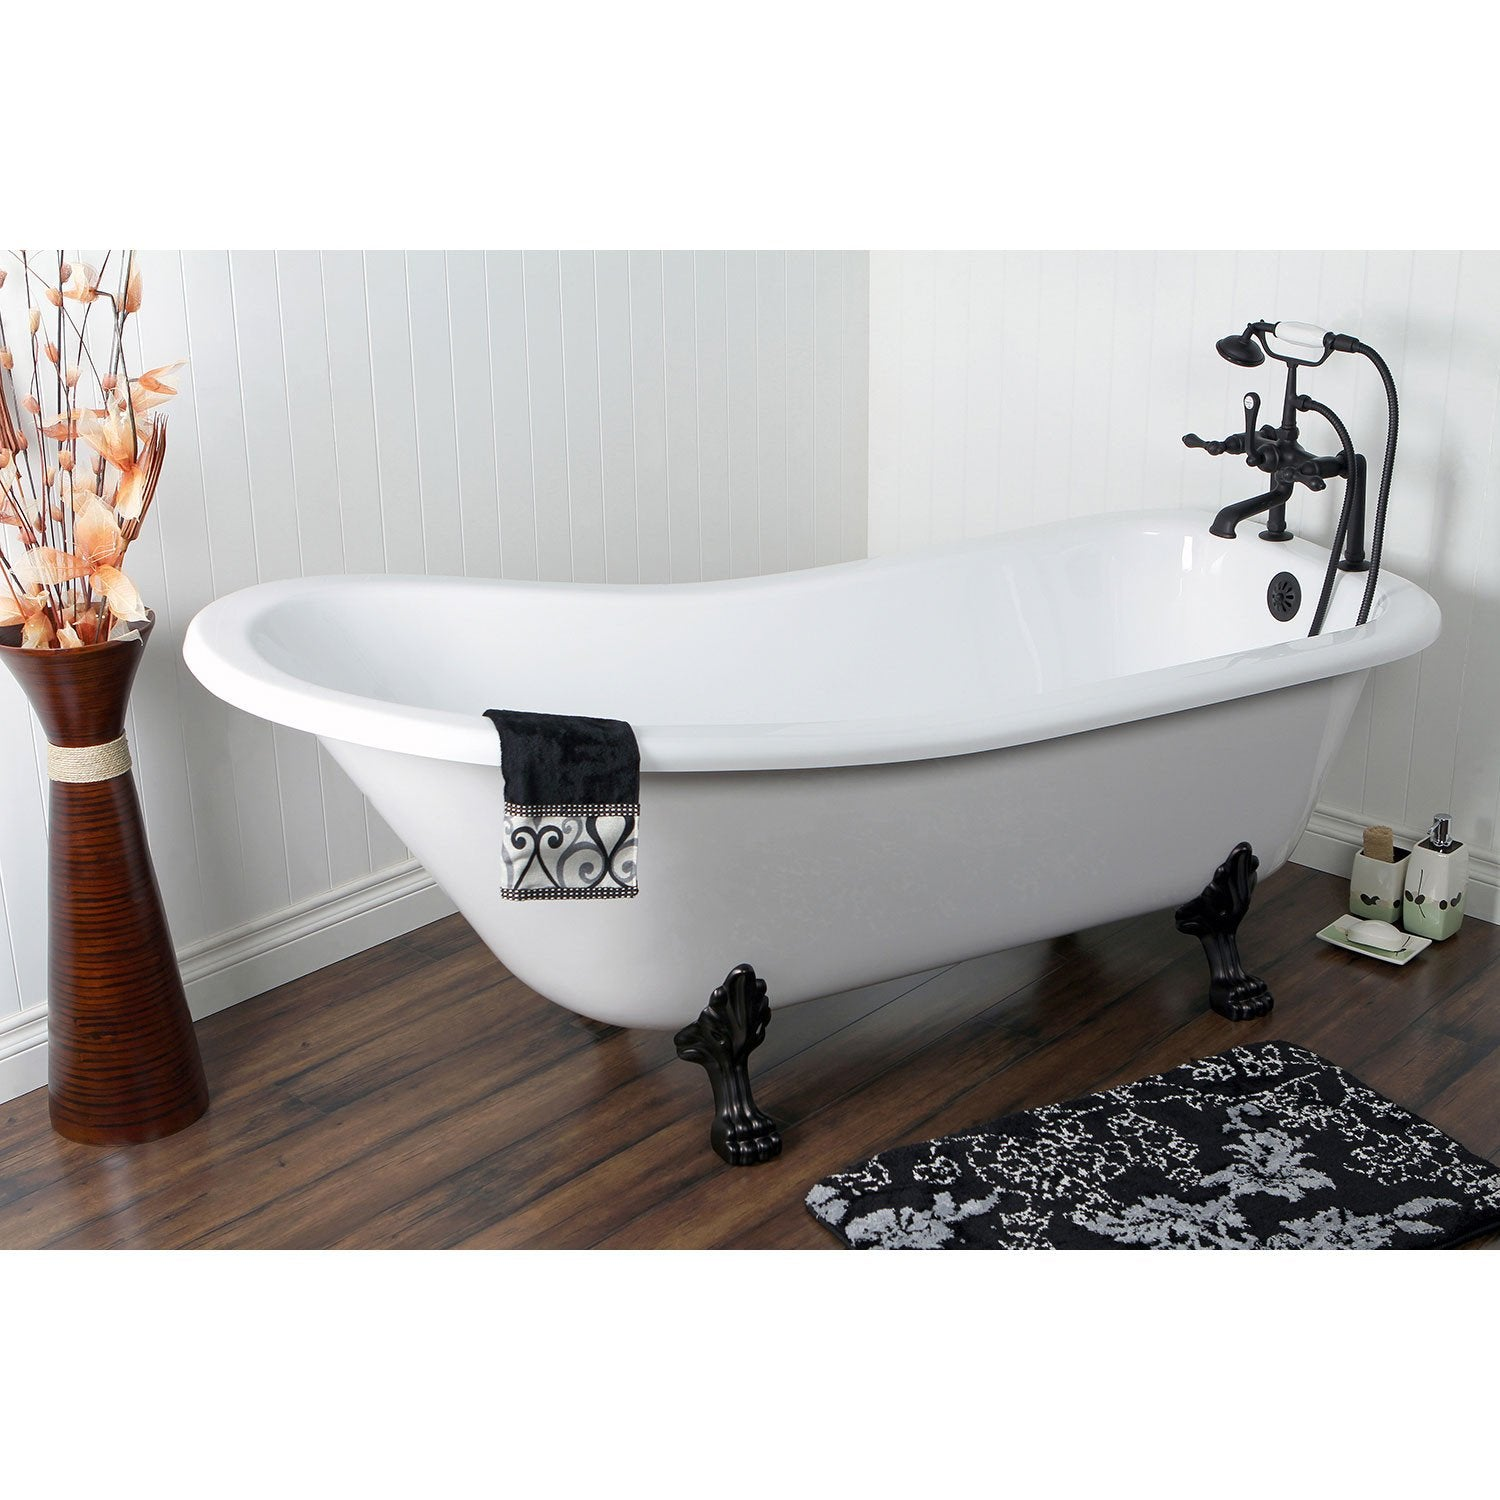 "69"" Acrylic Clawfoot Tub w Oil Rubbed Bronze Tub Filler & Hardware Package CTP51"